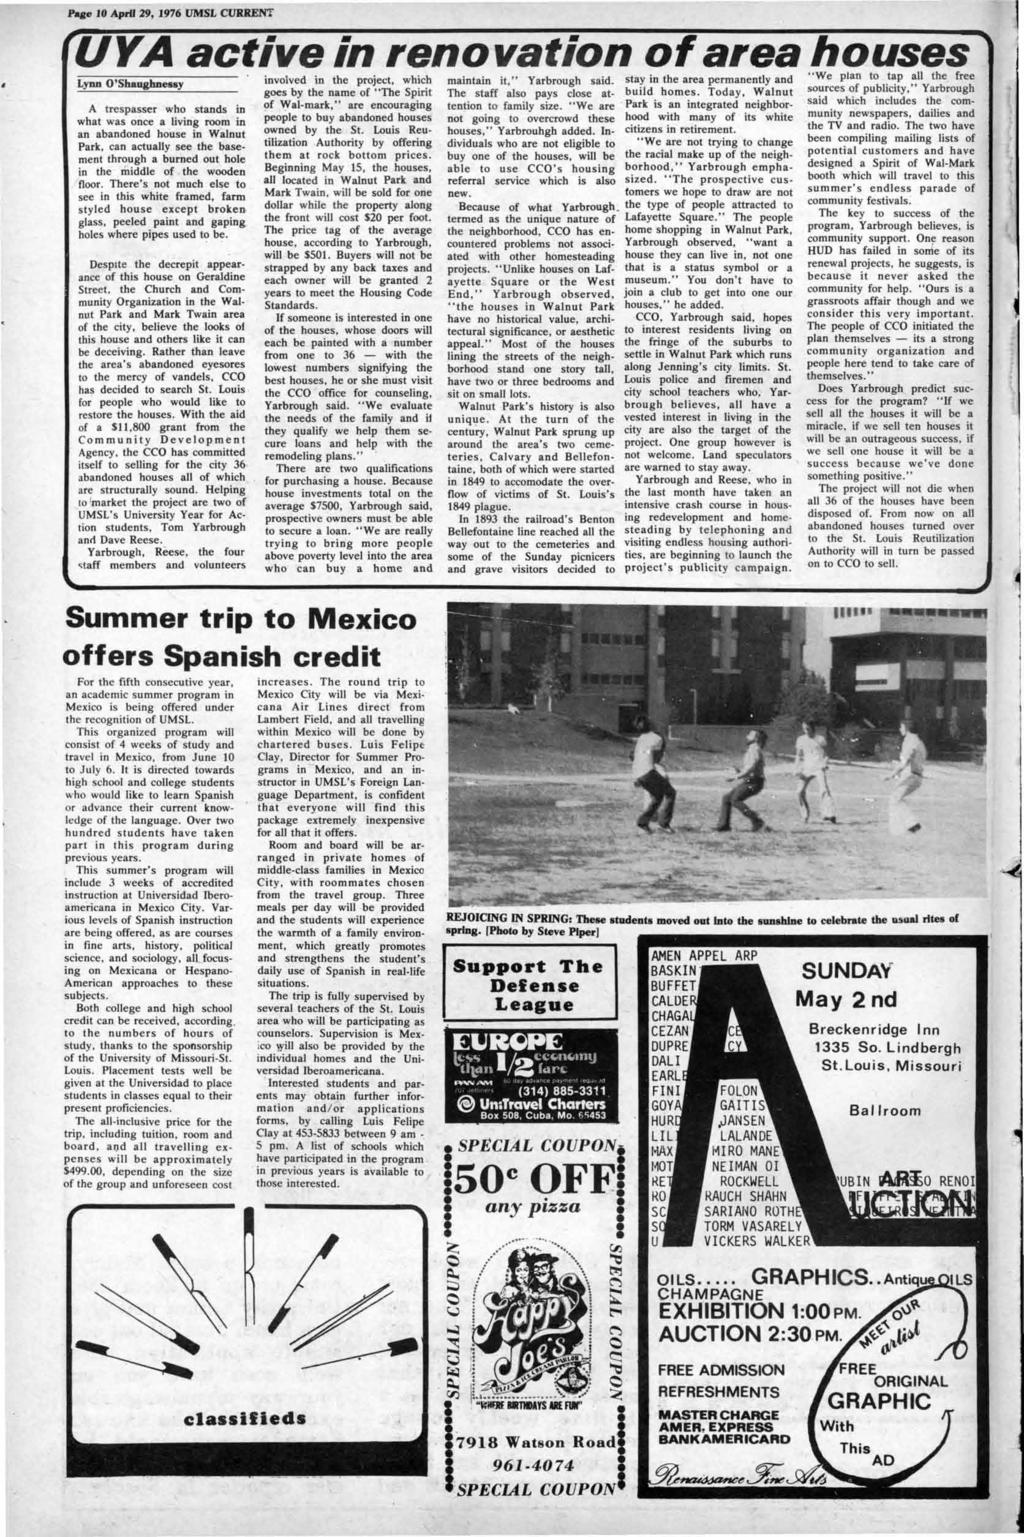 Page AprfJ 29, 1976 UMSL CURRENT UYA active,n renovation of area houses Lynn O'Shaughnessy A trespasser who stands in what was once a living room in an abandoned house in Walnut Park, can actually